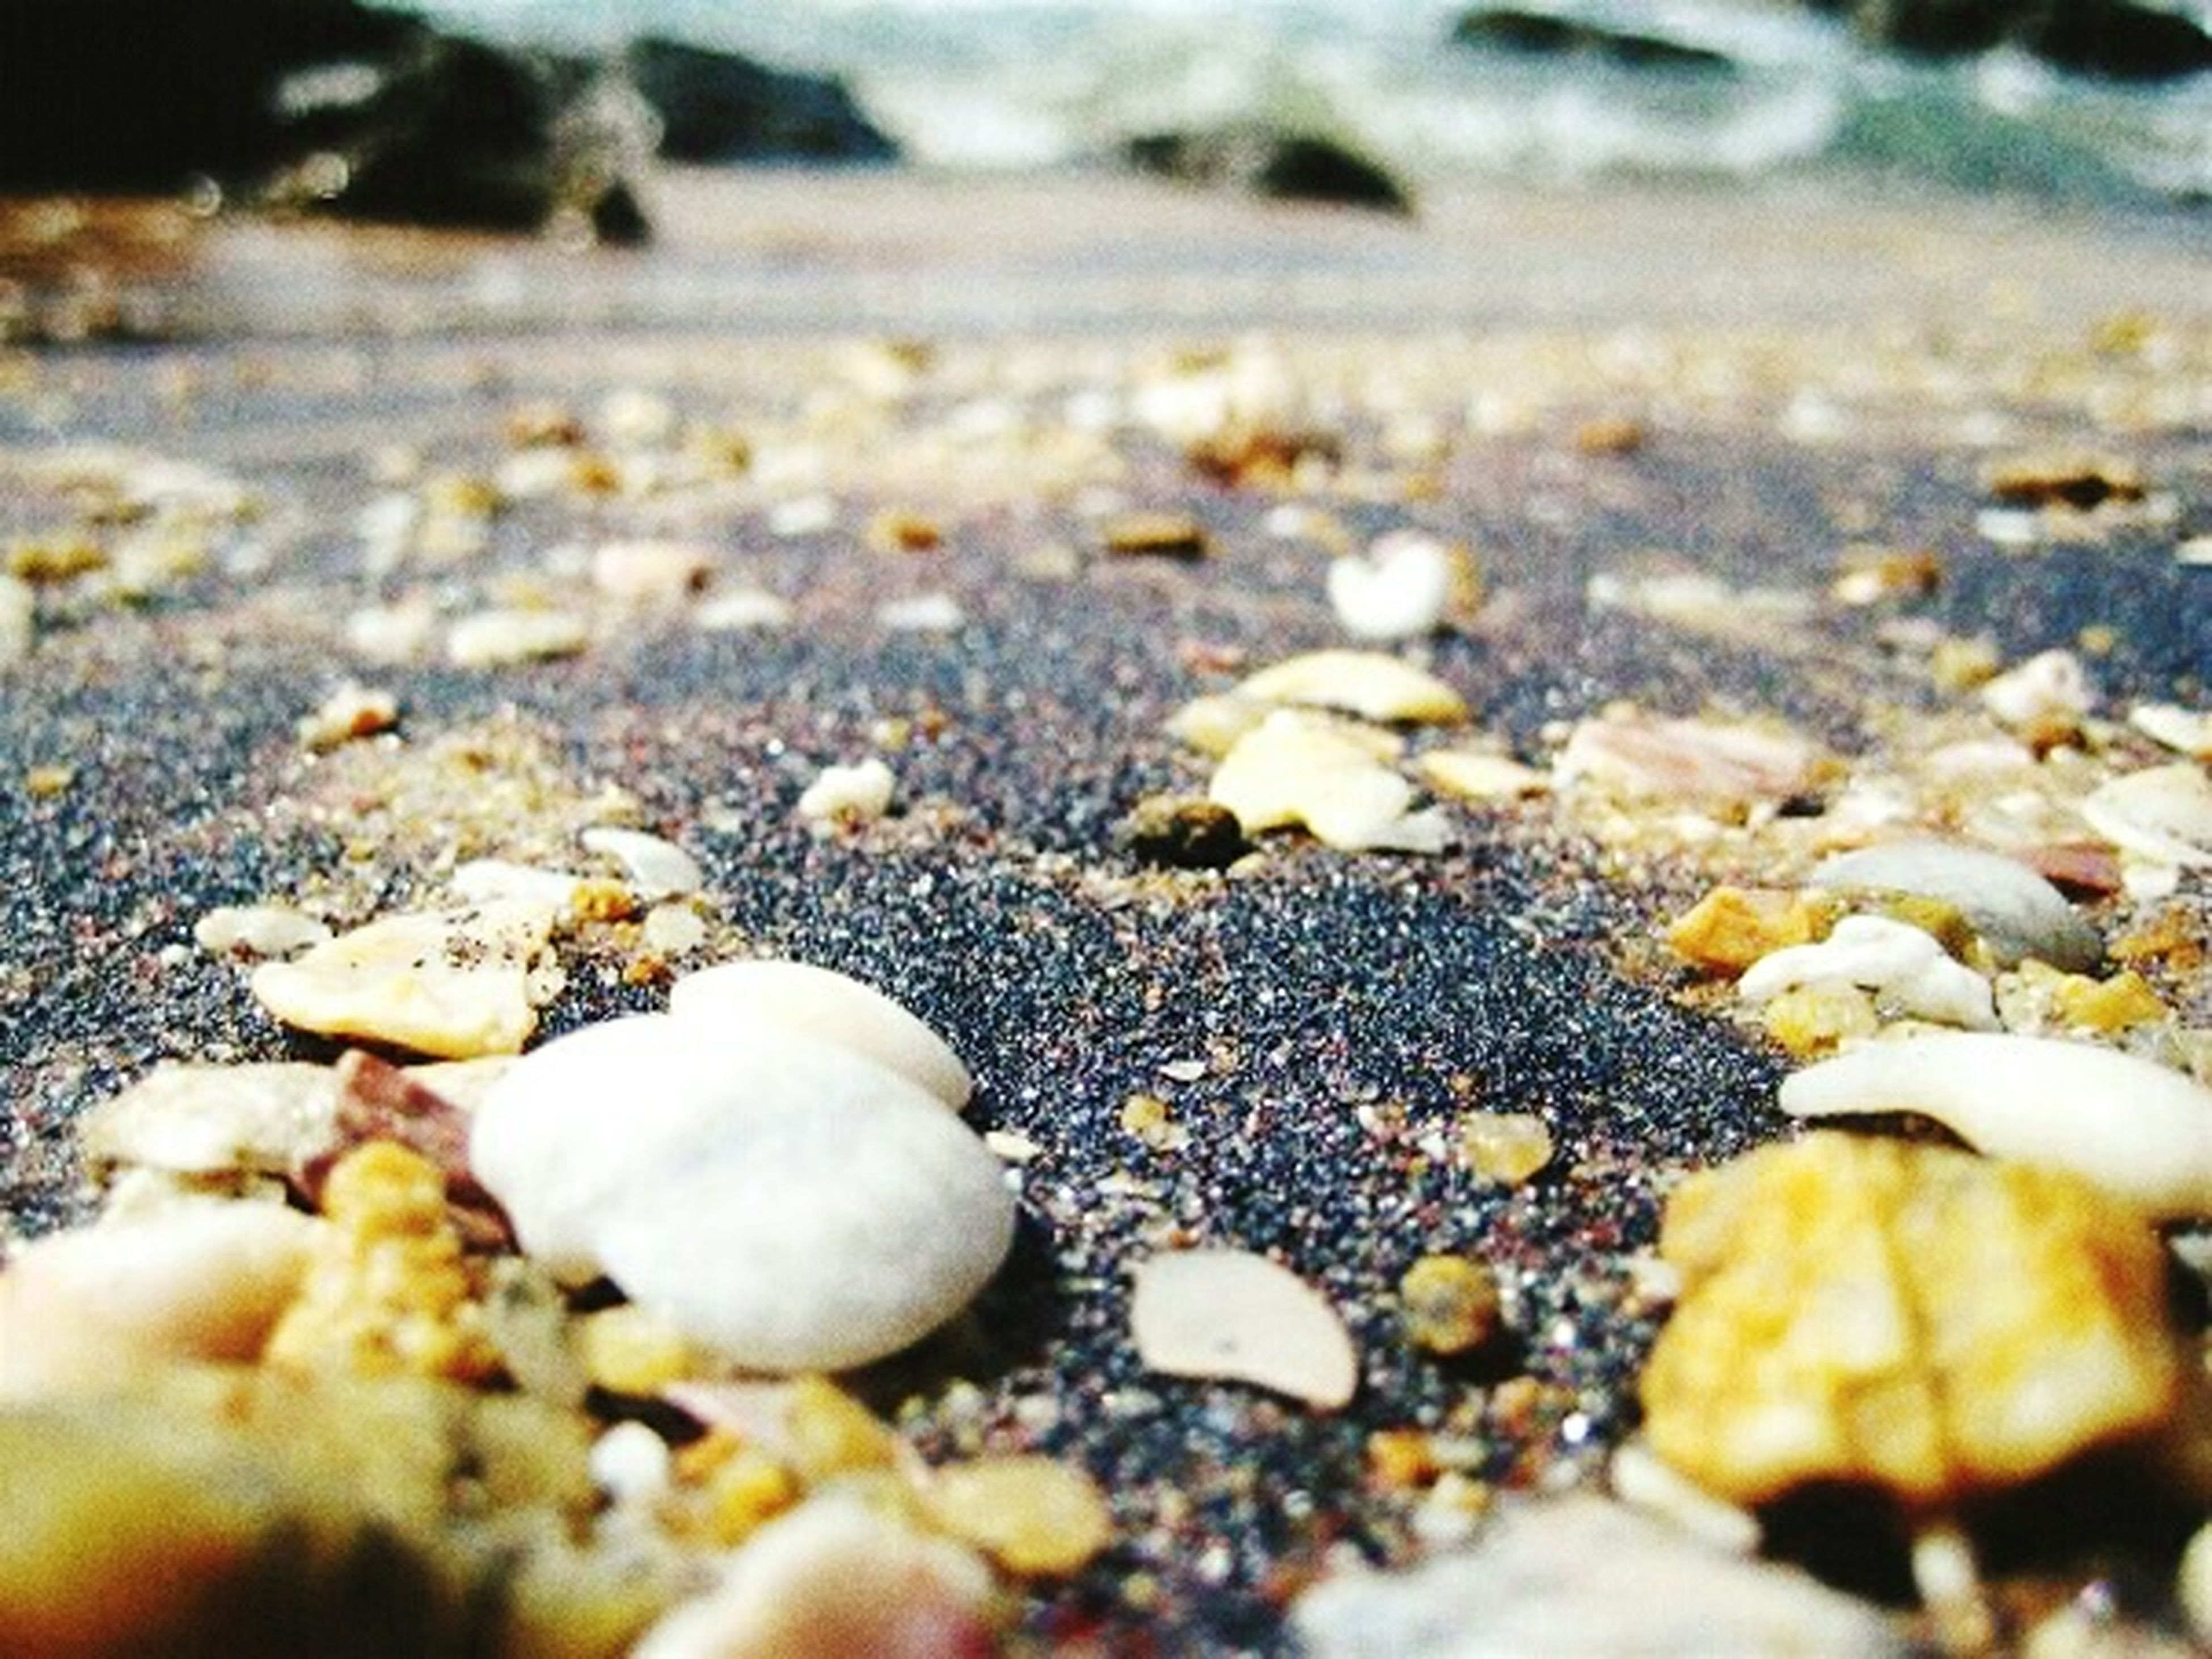 beach, selective focus, pebble, sand, surface level, nature, shore, stone - object, tranquility, stone, close-up, seashell, focus on foreground, rock - object, outdoors, day, no people, beauty in nature, water, shell